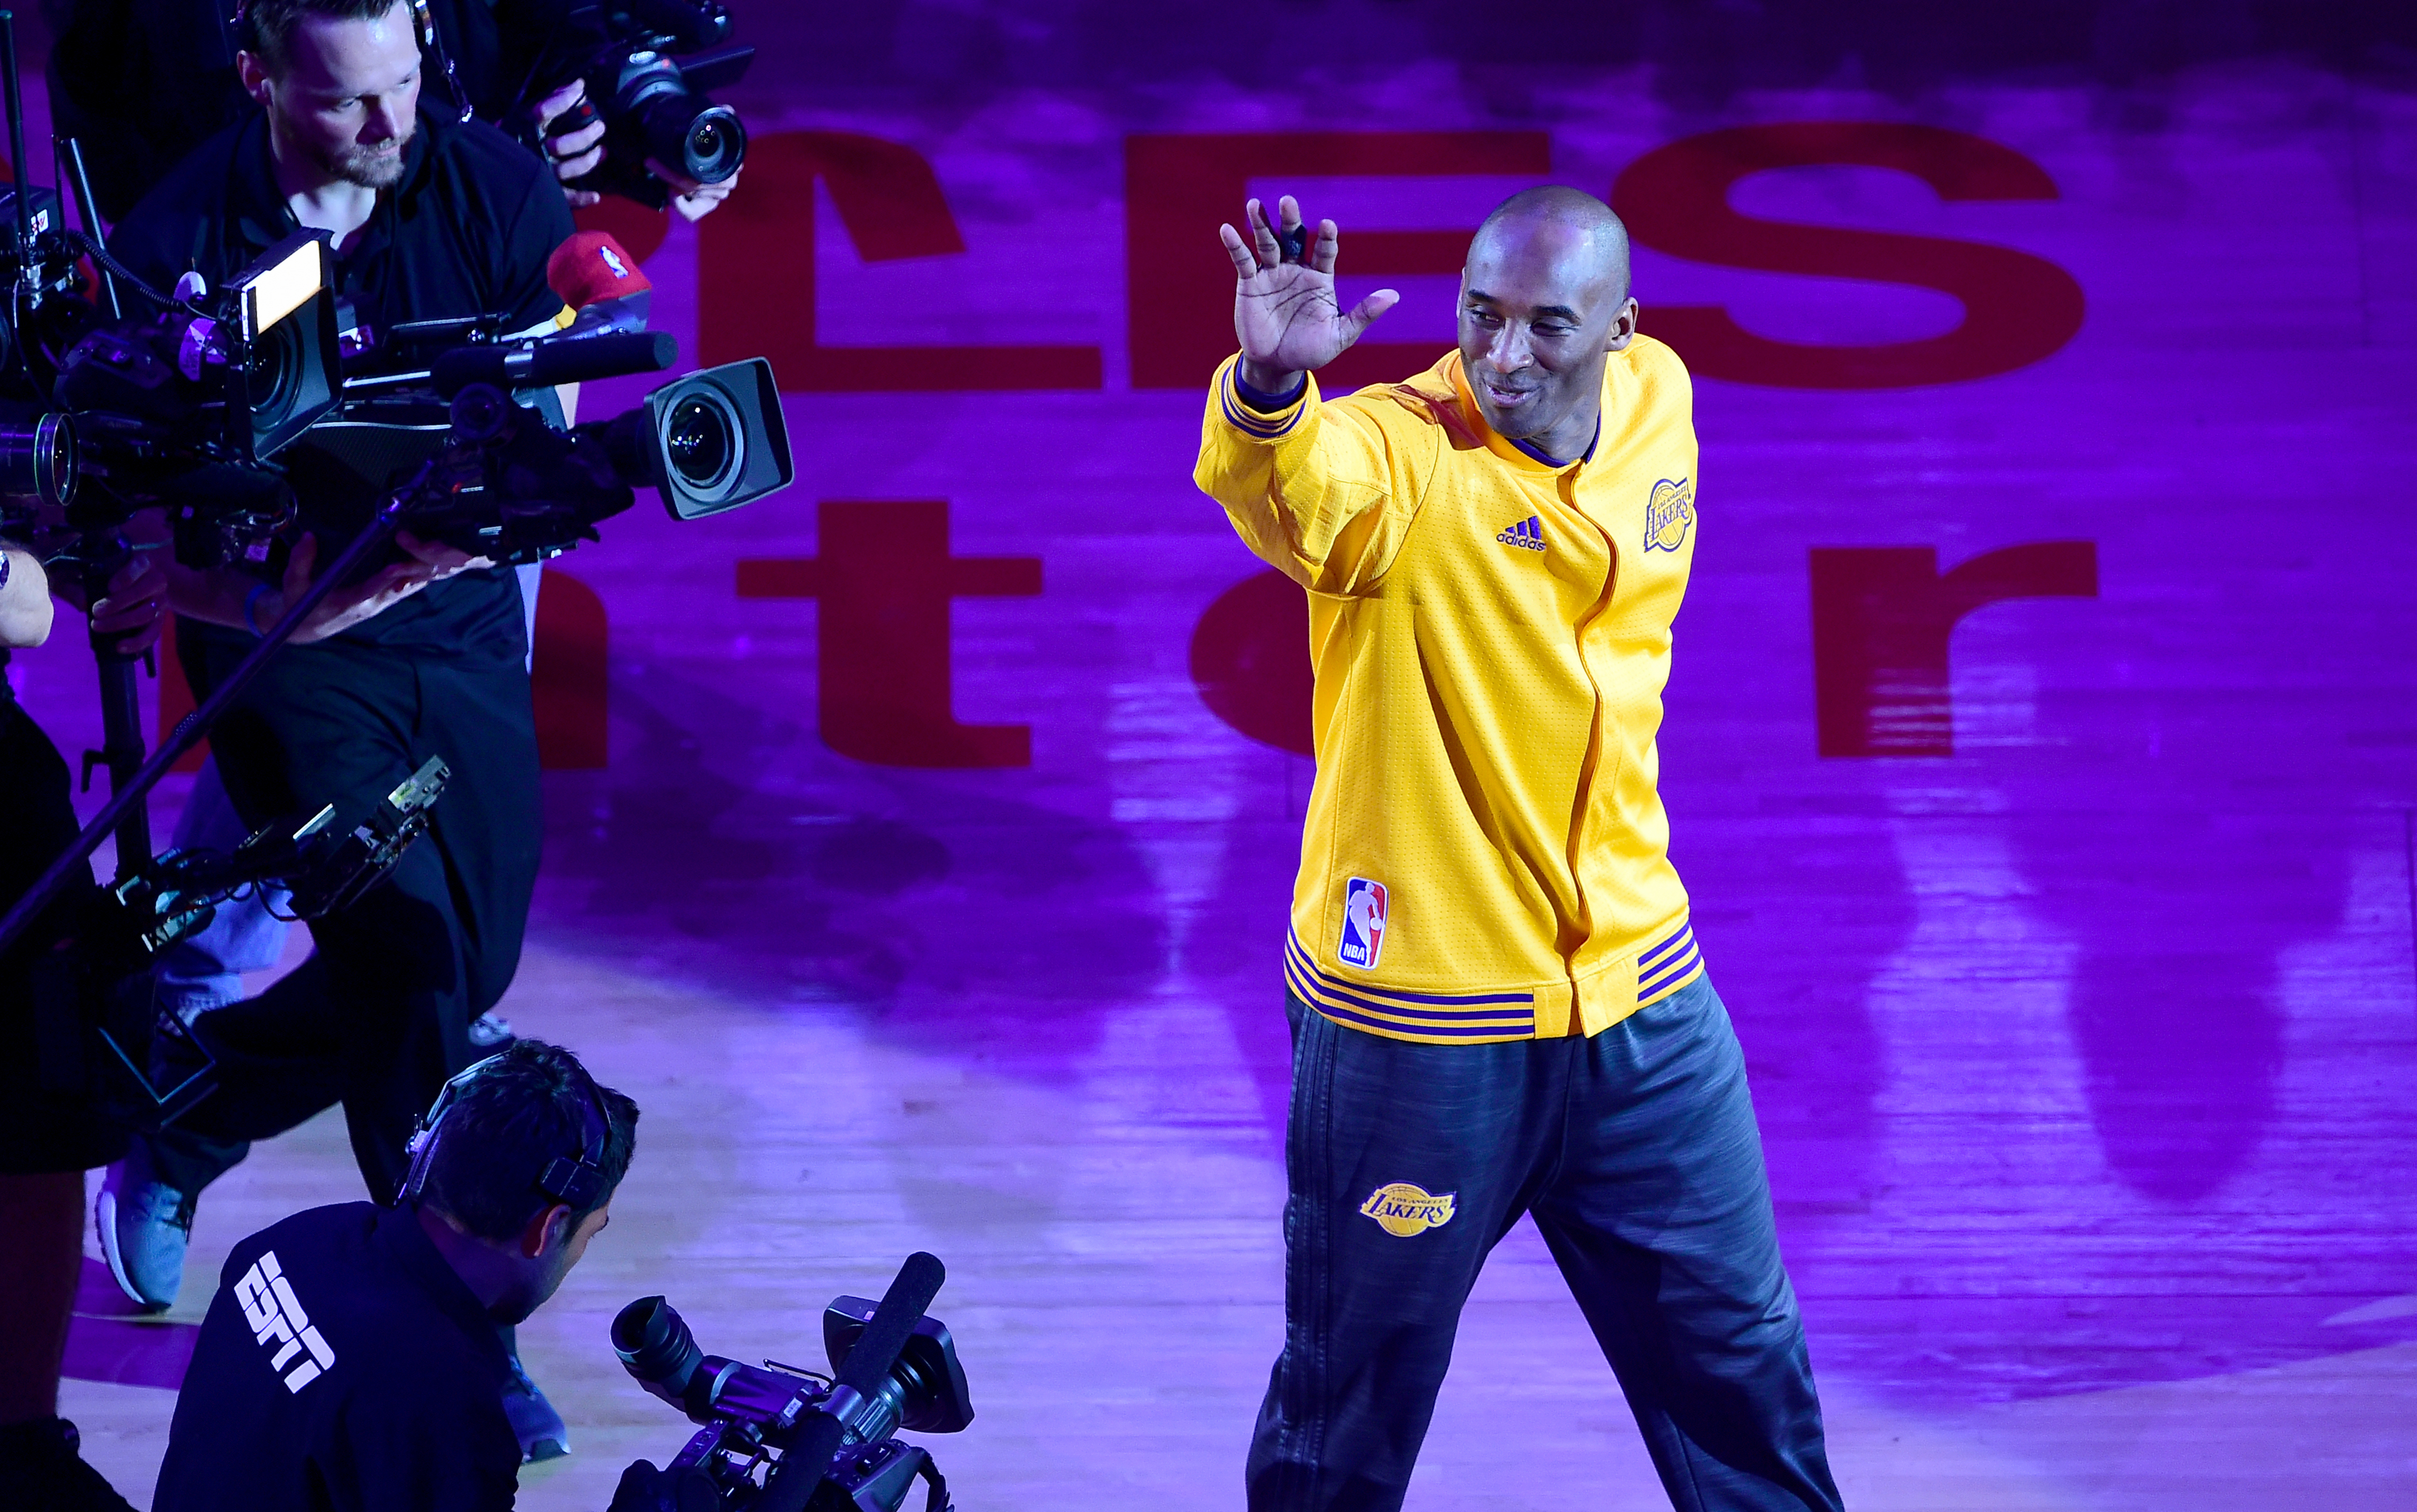 Kobe Bryant gestures to fans as he takes the court for his last game for the Los Angeles Lakers against Utah Jazz in their season-ending NBA western division matchup n Los Angeles, California on April 13, 2016. / AFP PHOTO / FREDERIC J. BROWN